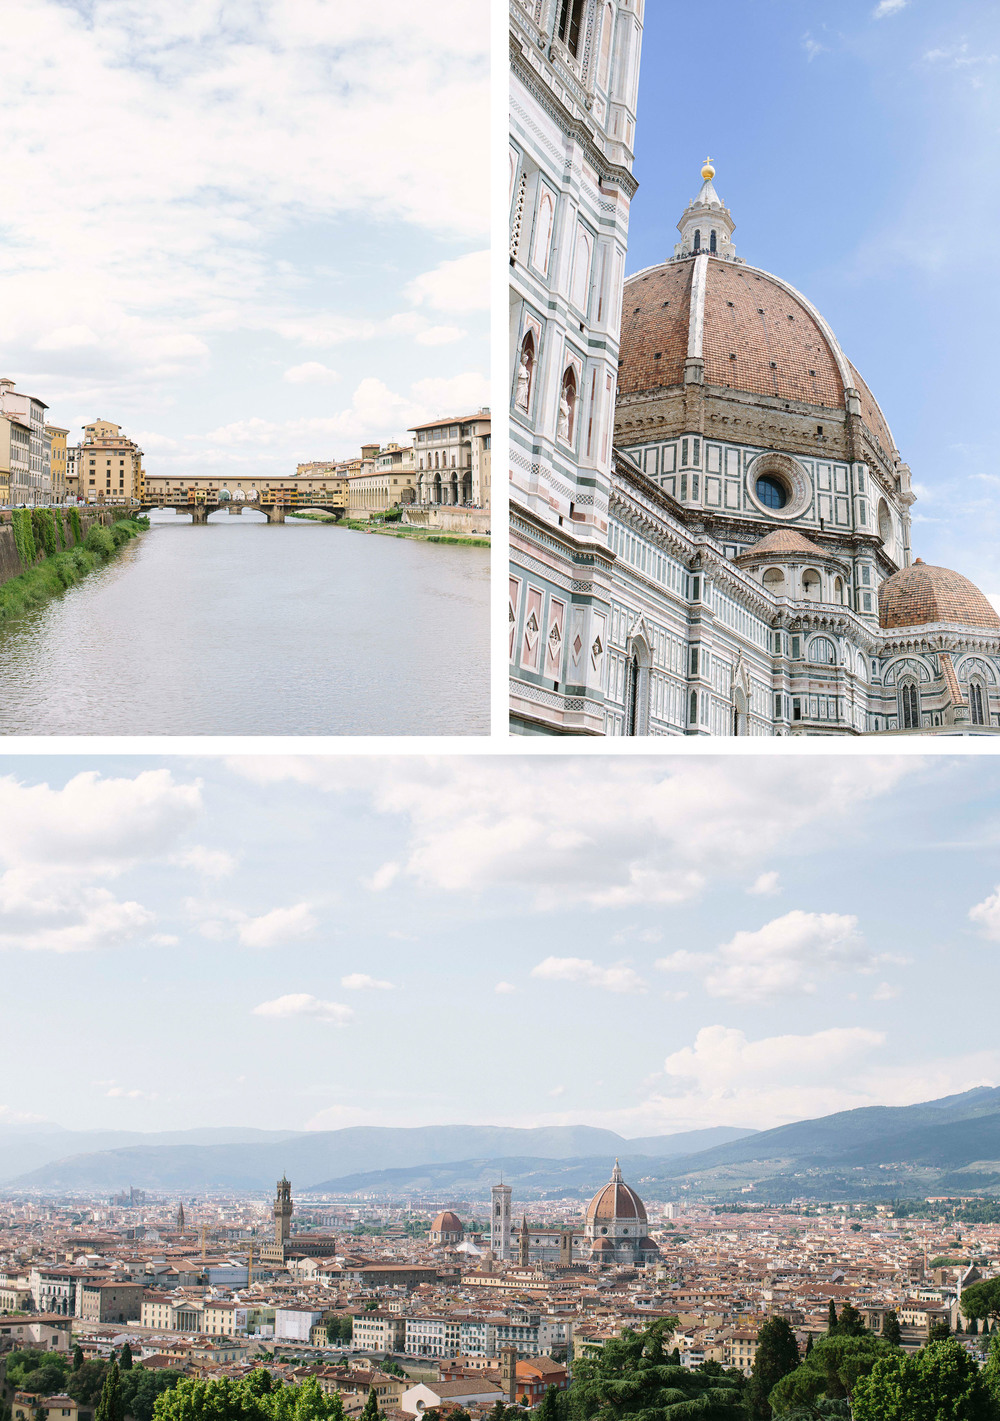 I've always heard incredible things about Florence, but it truly was the perfect mix of city and small town.